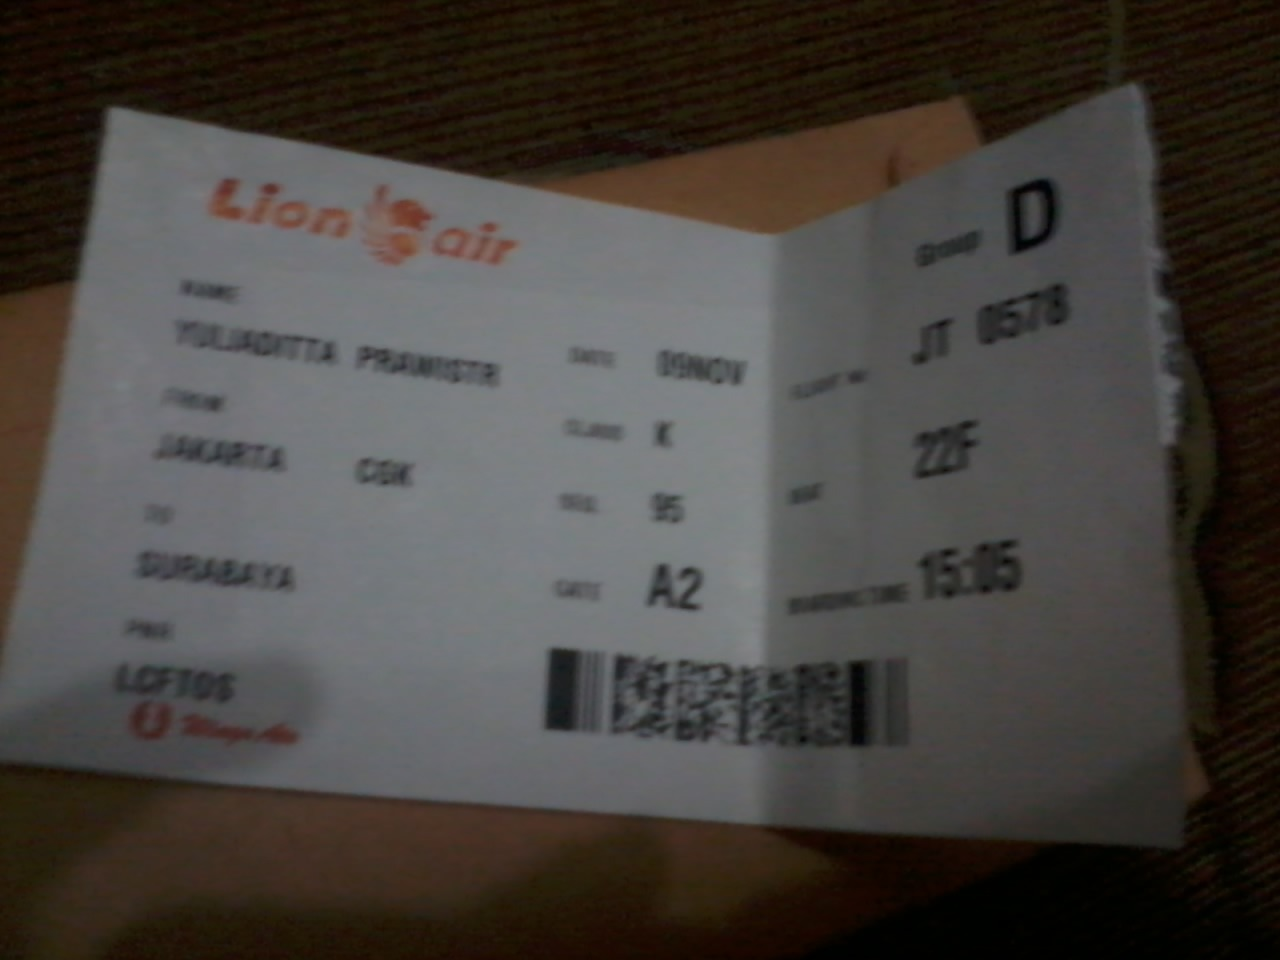 Boarding pass tujuan soetta(CGK)-Djuanda(surabaya) bring my heart to you a man with red tie good looking help all people who needs your help you always smile everytime :))